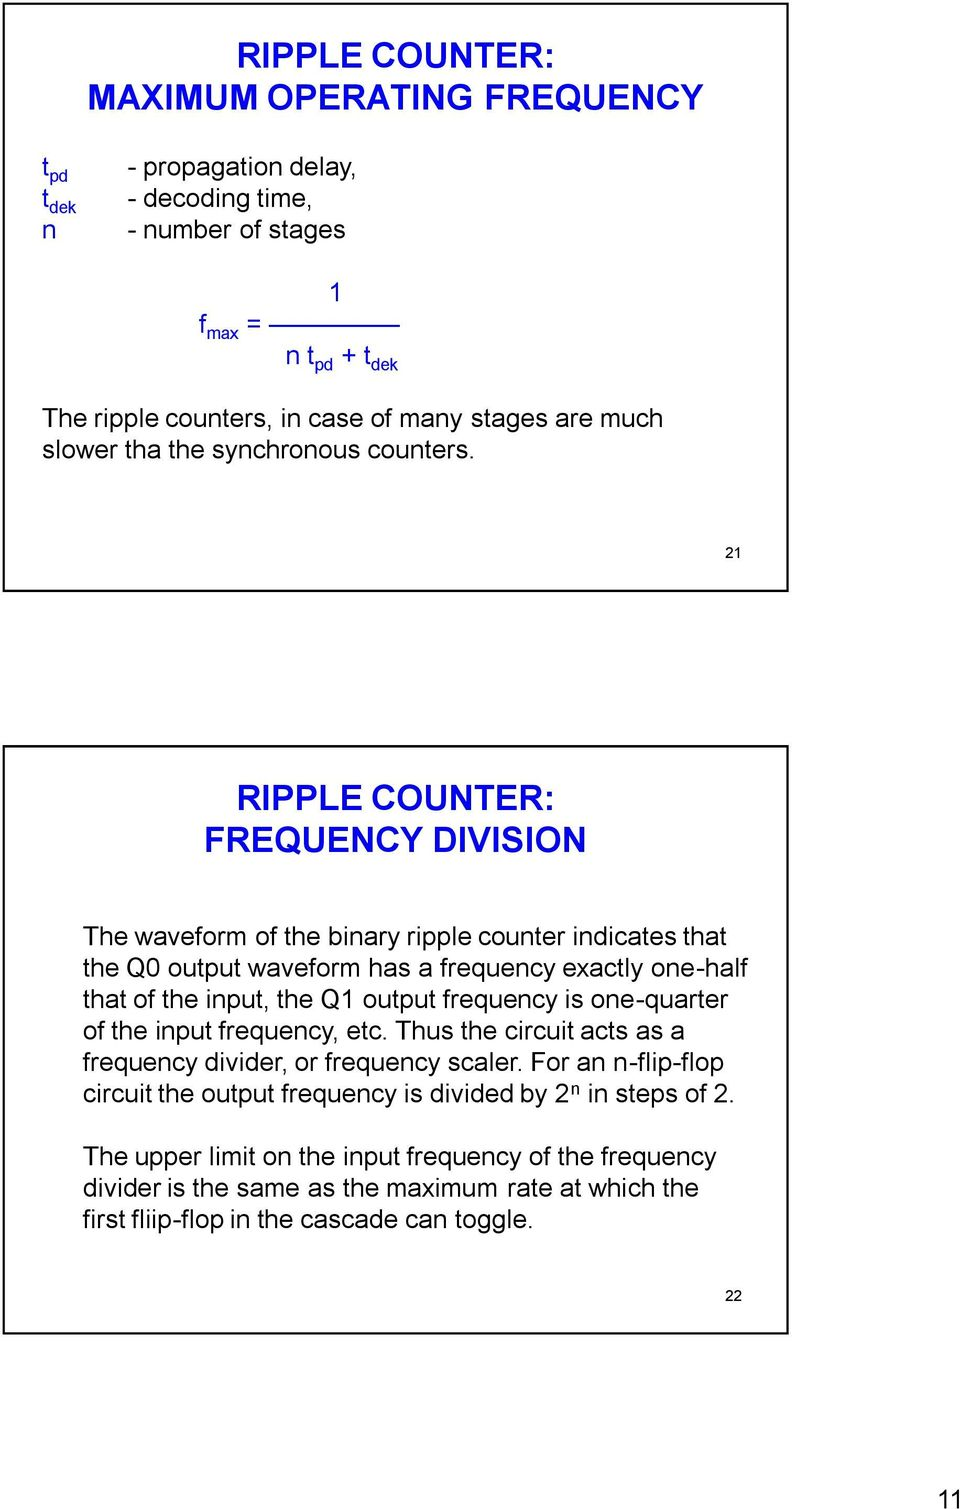 21 RIPPLE COUNTER: FREQUENCY DIVISION The waveform of the binary ripple counter indicates that the Q0 output waveform has a frequency exactly one-half that of the input, the Q1 output frequency